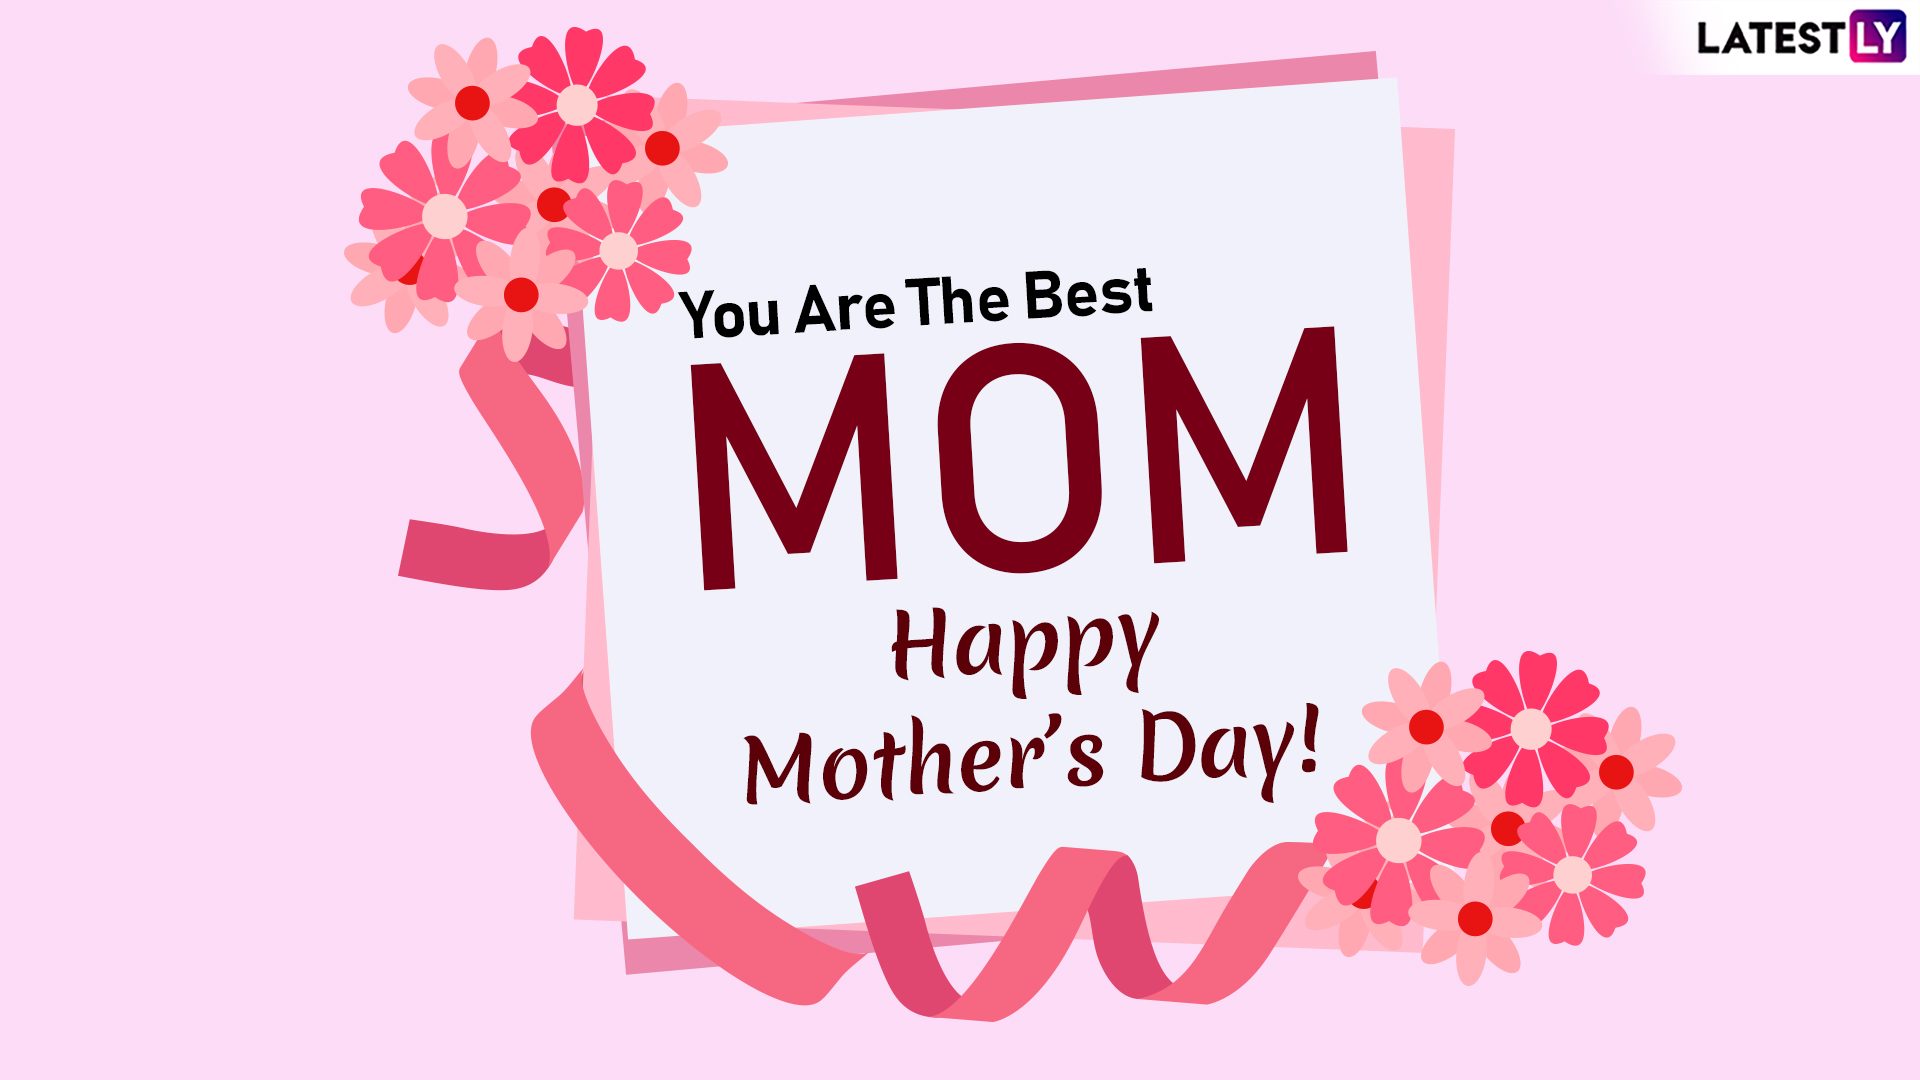 Happy Mother's Day HD Images, Quotes and Wallpapers for ...